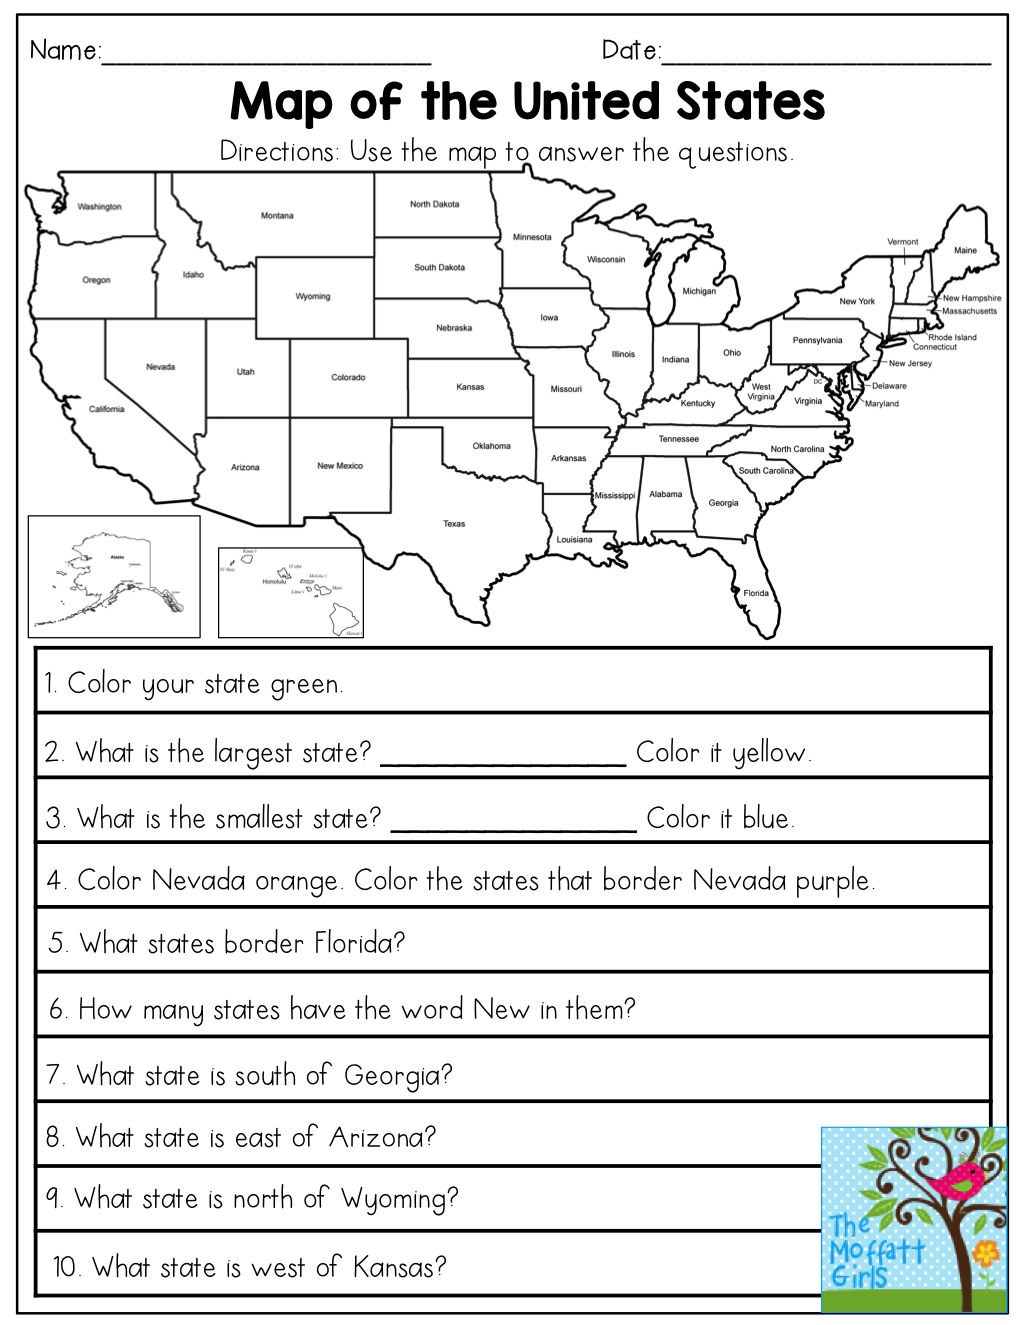 Map Of The United States Answer The Questions This November NO - Fun us states coloring map